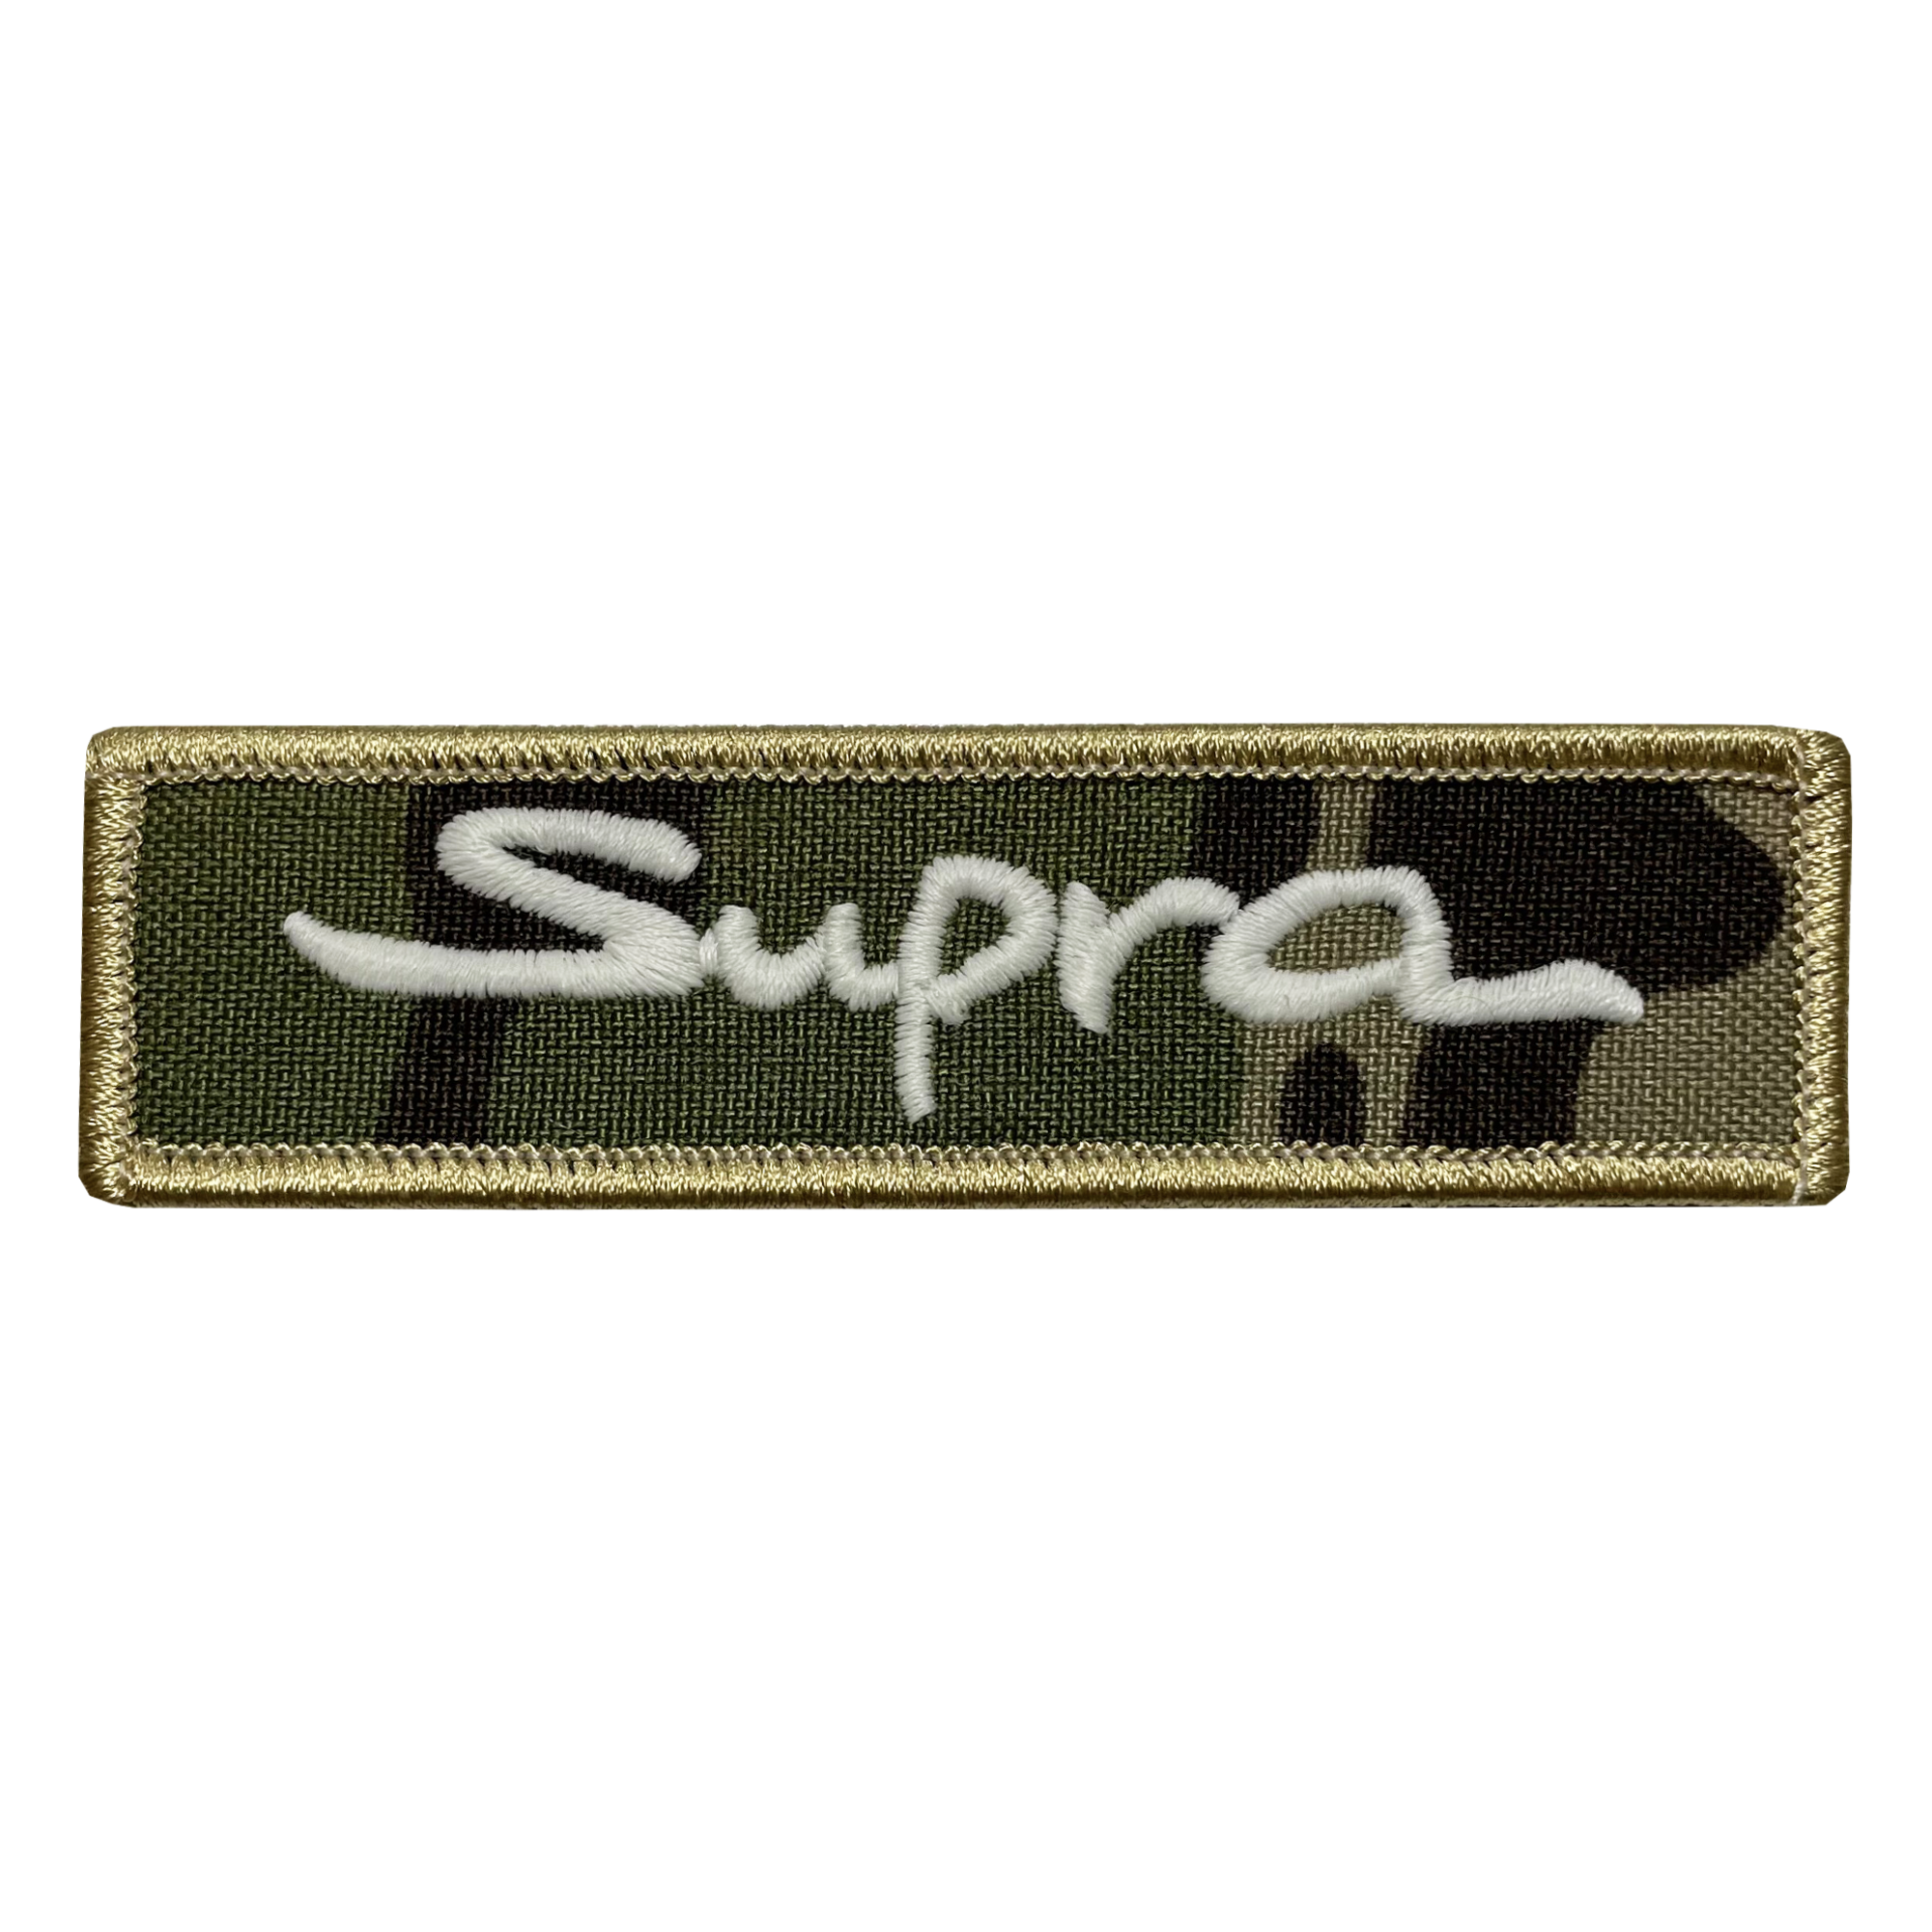 Supra Camo Name Tape Patch